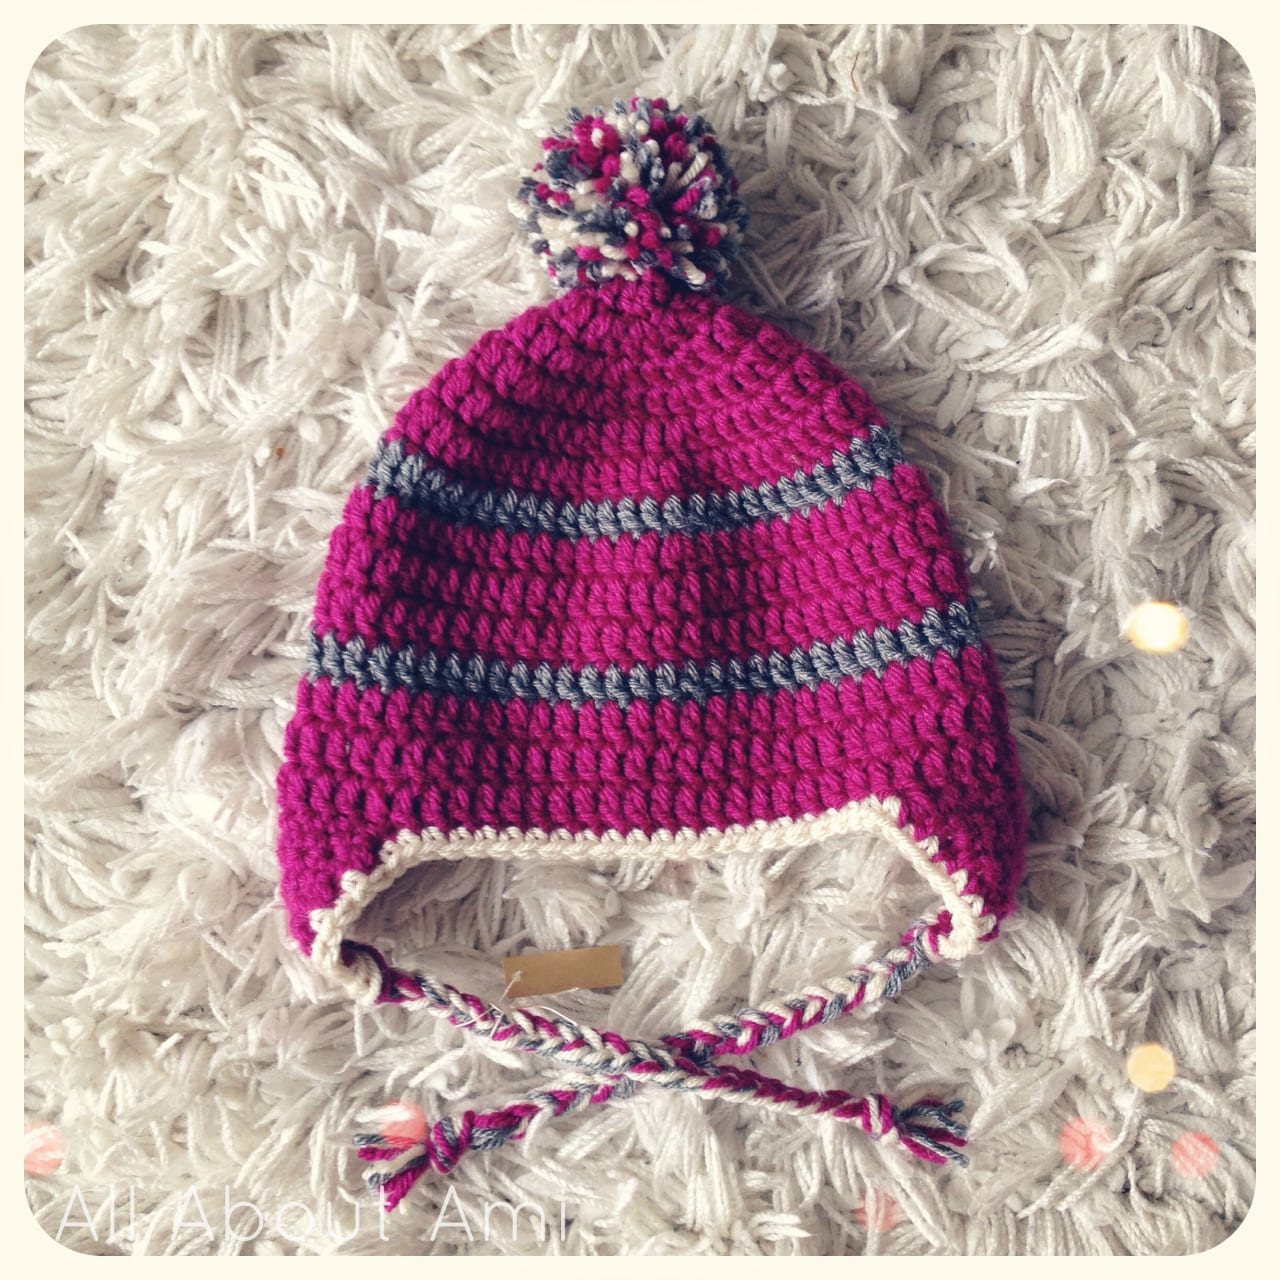 Baby Pom Pom Earflap Hats All About Ami